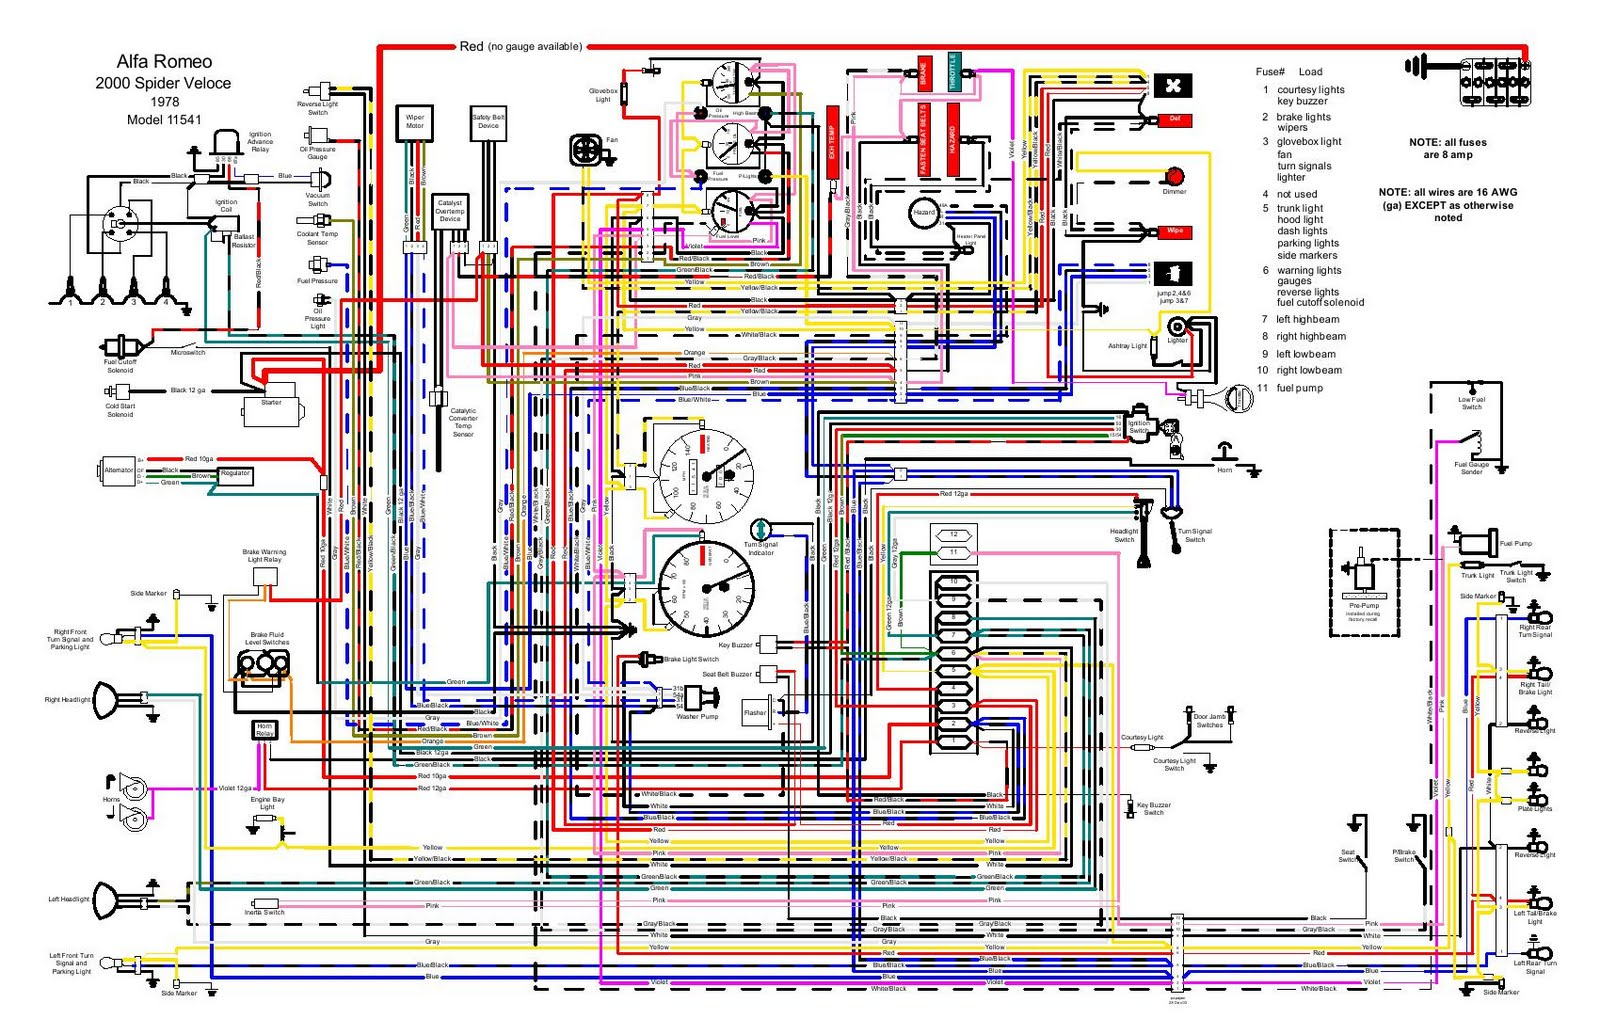 wiring diagram for 1978 alfa romeo spider CHaEWjz wiring diagrams cars readingrat net wiring schematics for cars at panicattacktreatment.co